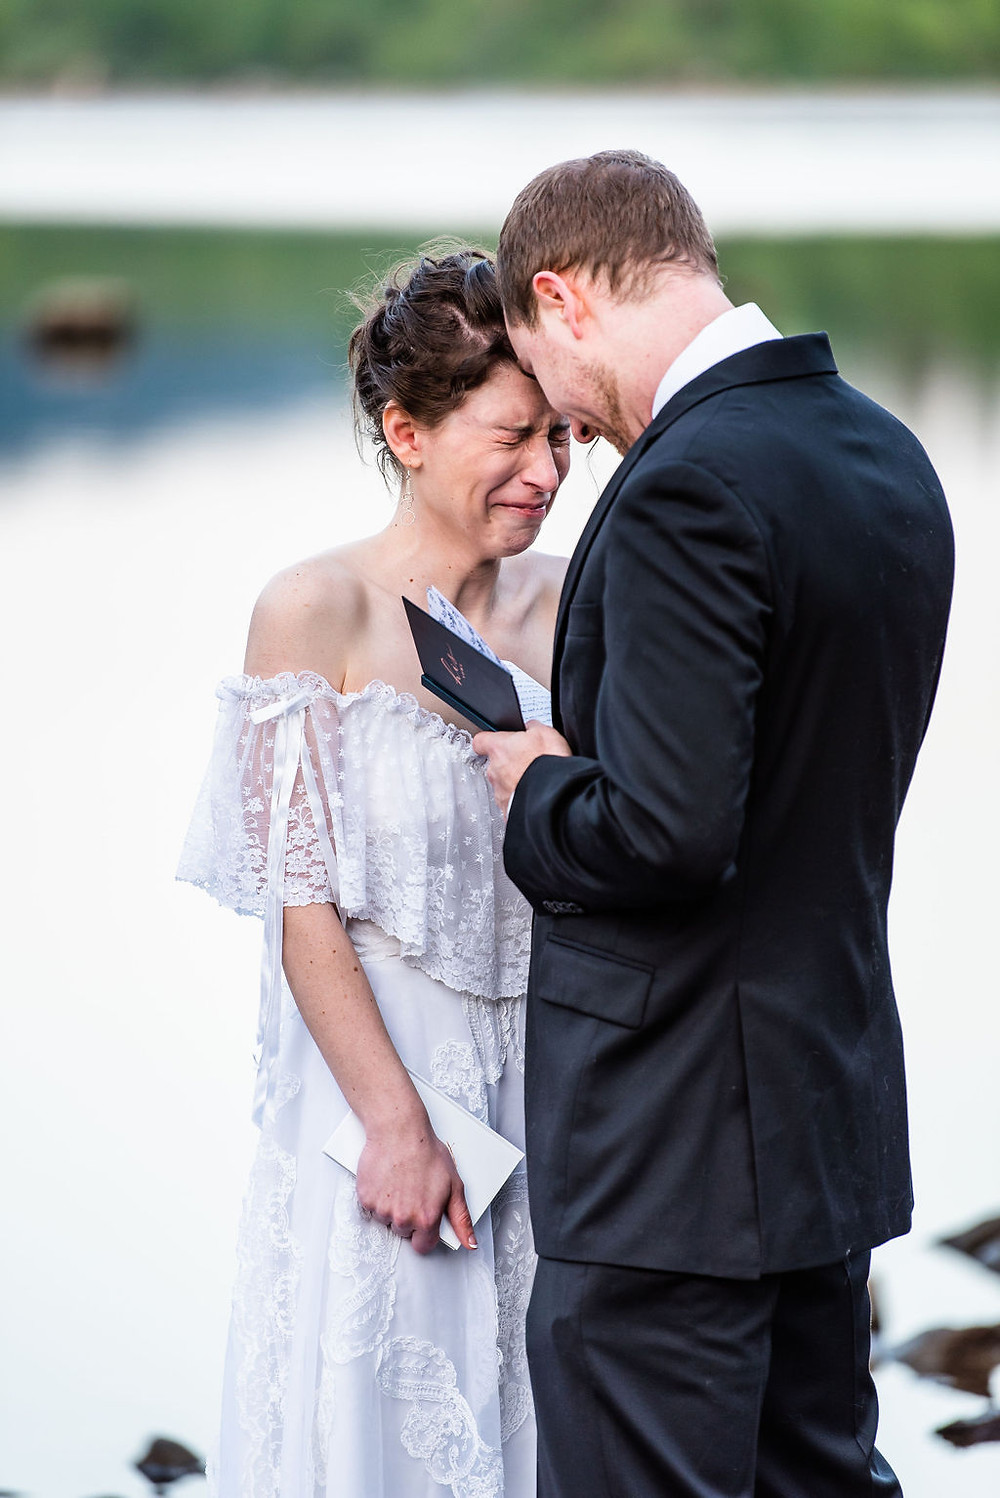 A bride cries during their elopement ceremony vows